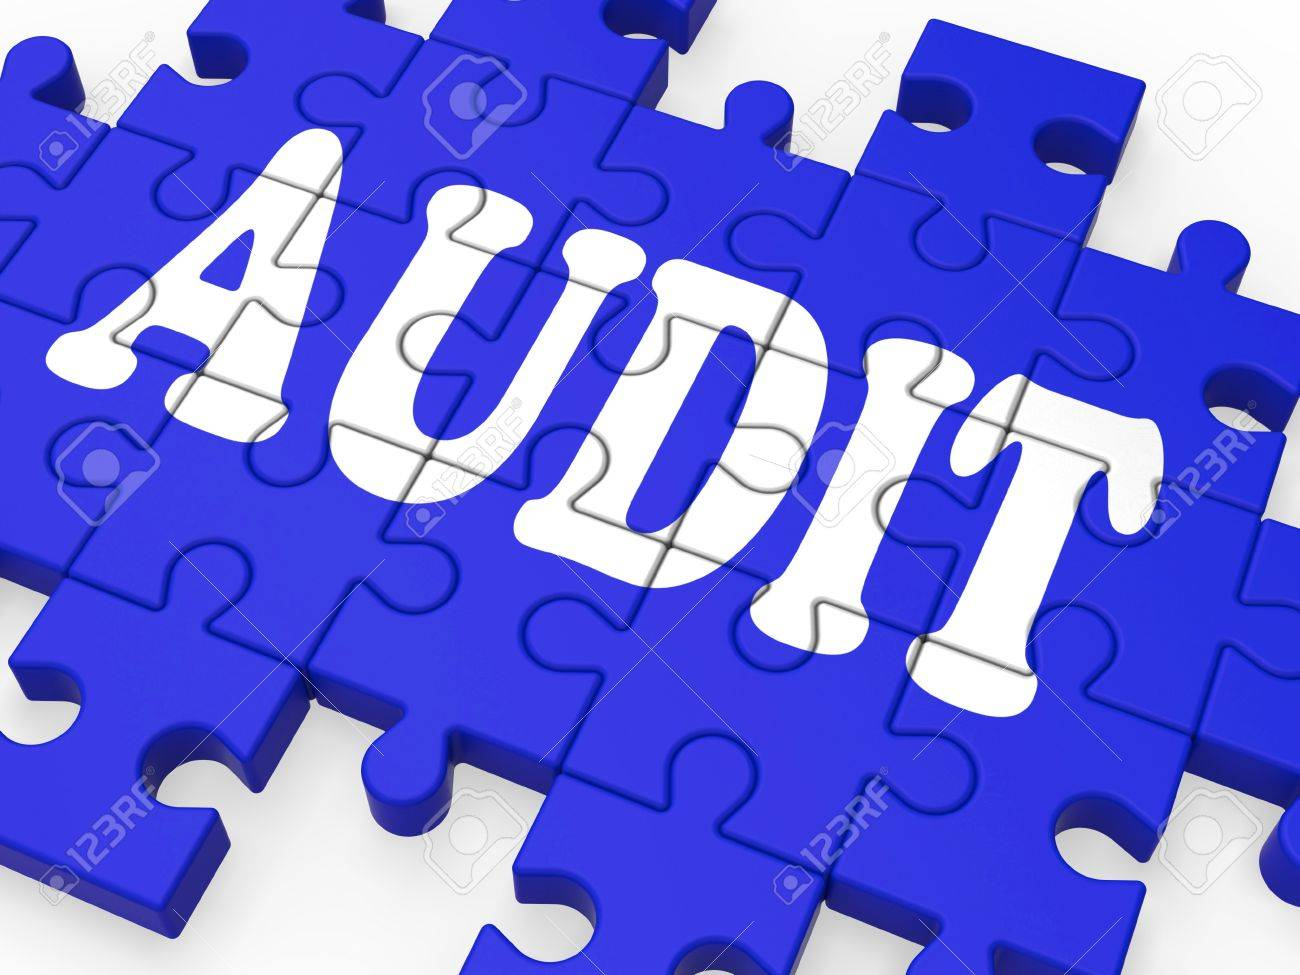 audit puzzle showing auditor inspections and auditing stock photo